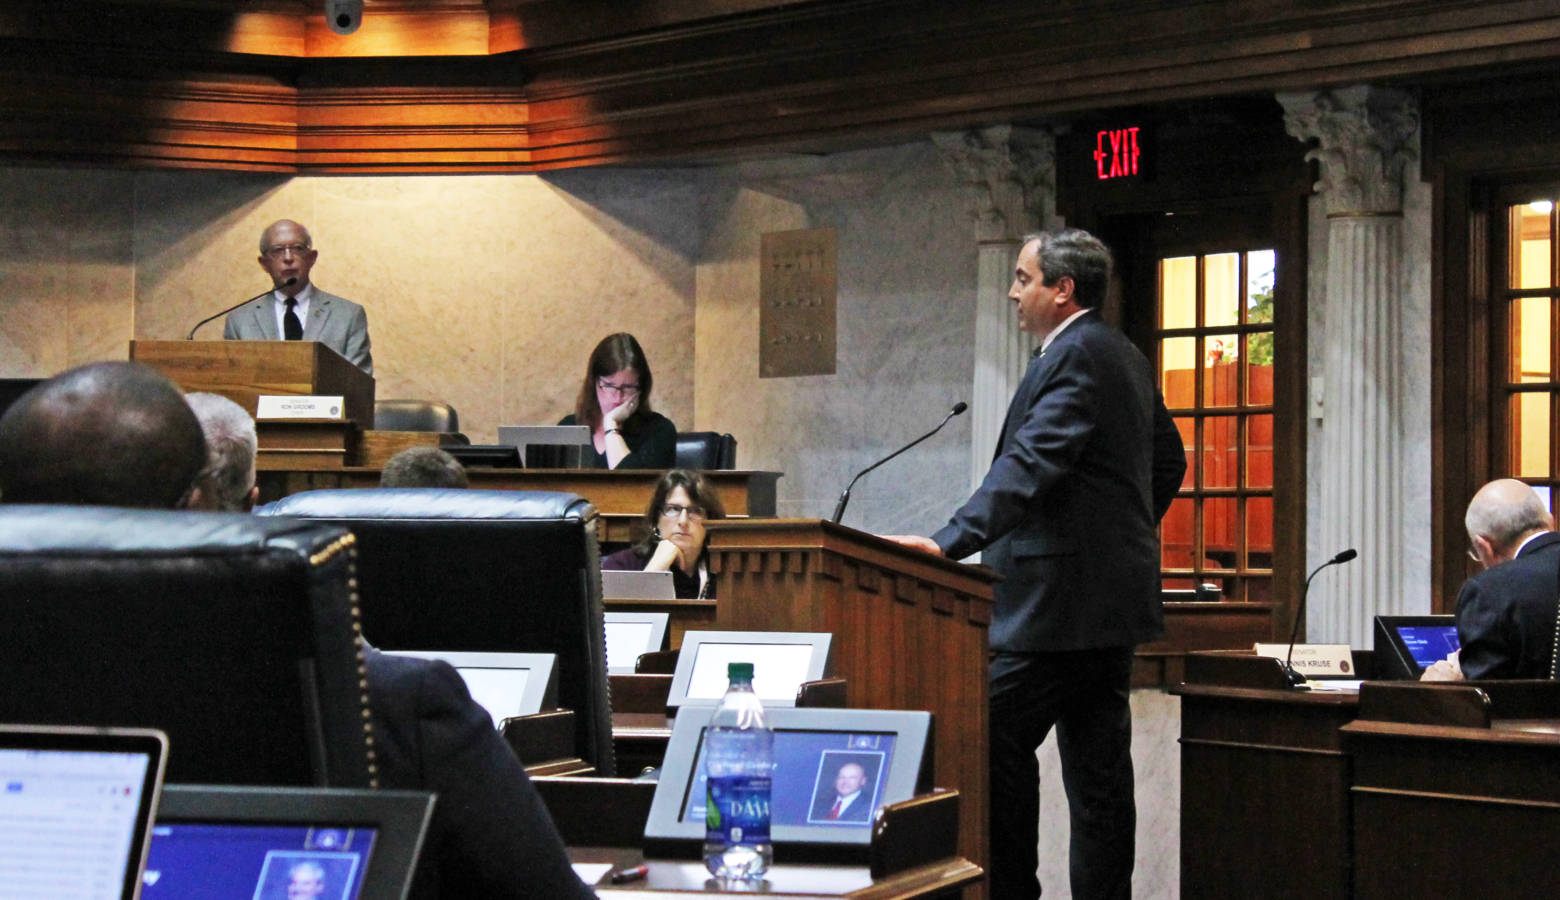 Sen. Mike Bohacek (R-Michiana Shores) answers questions from the Senate Family and Children Services Committee about his bill, SB 11. (Lauren Chapman/IPB News)